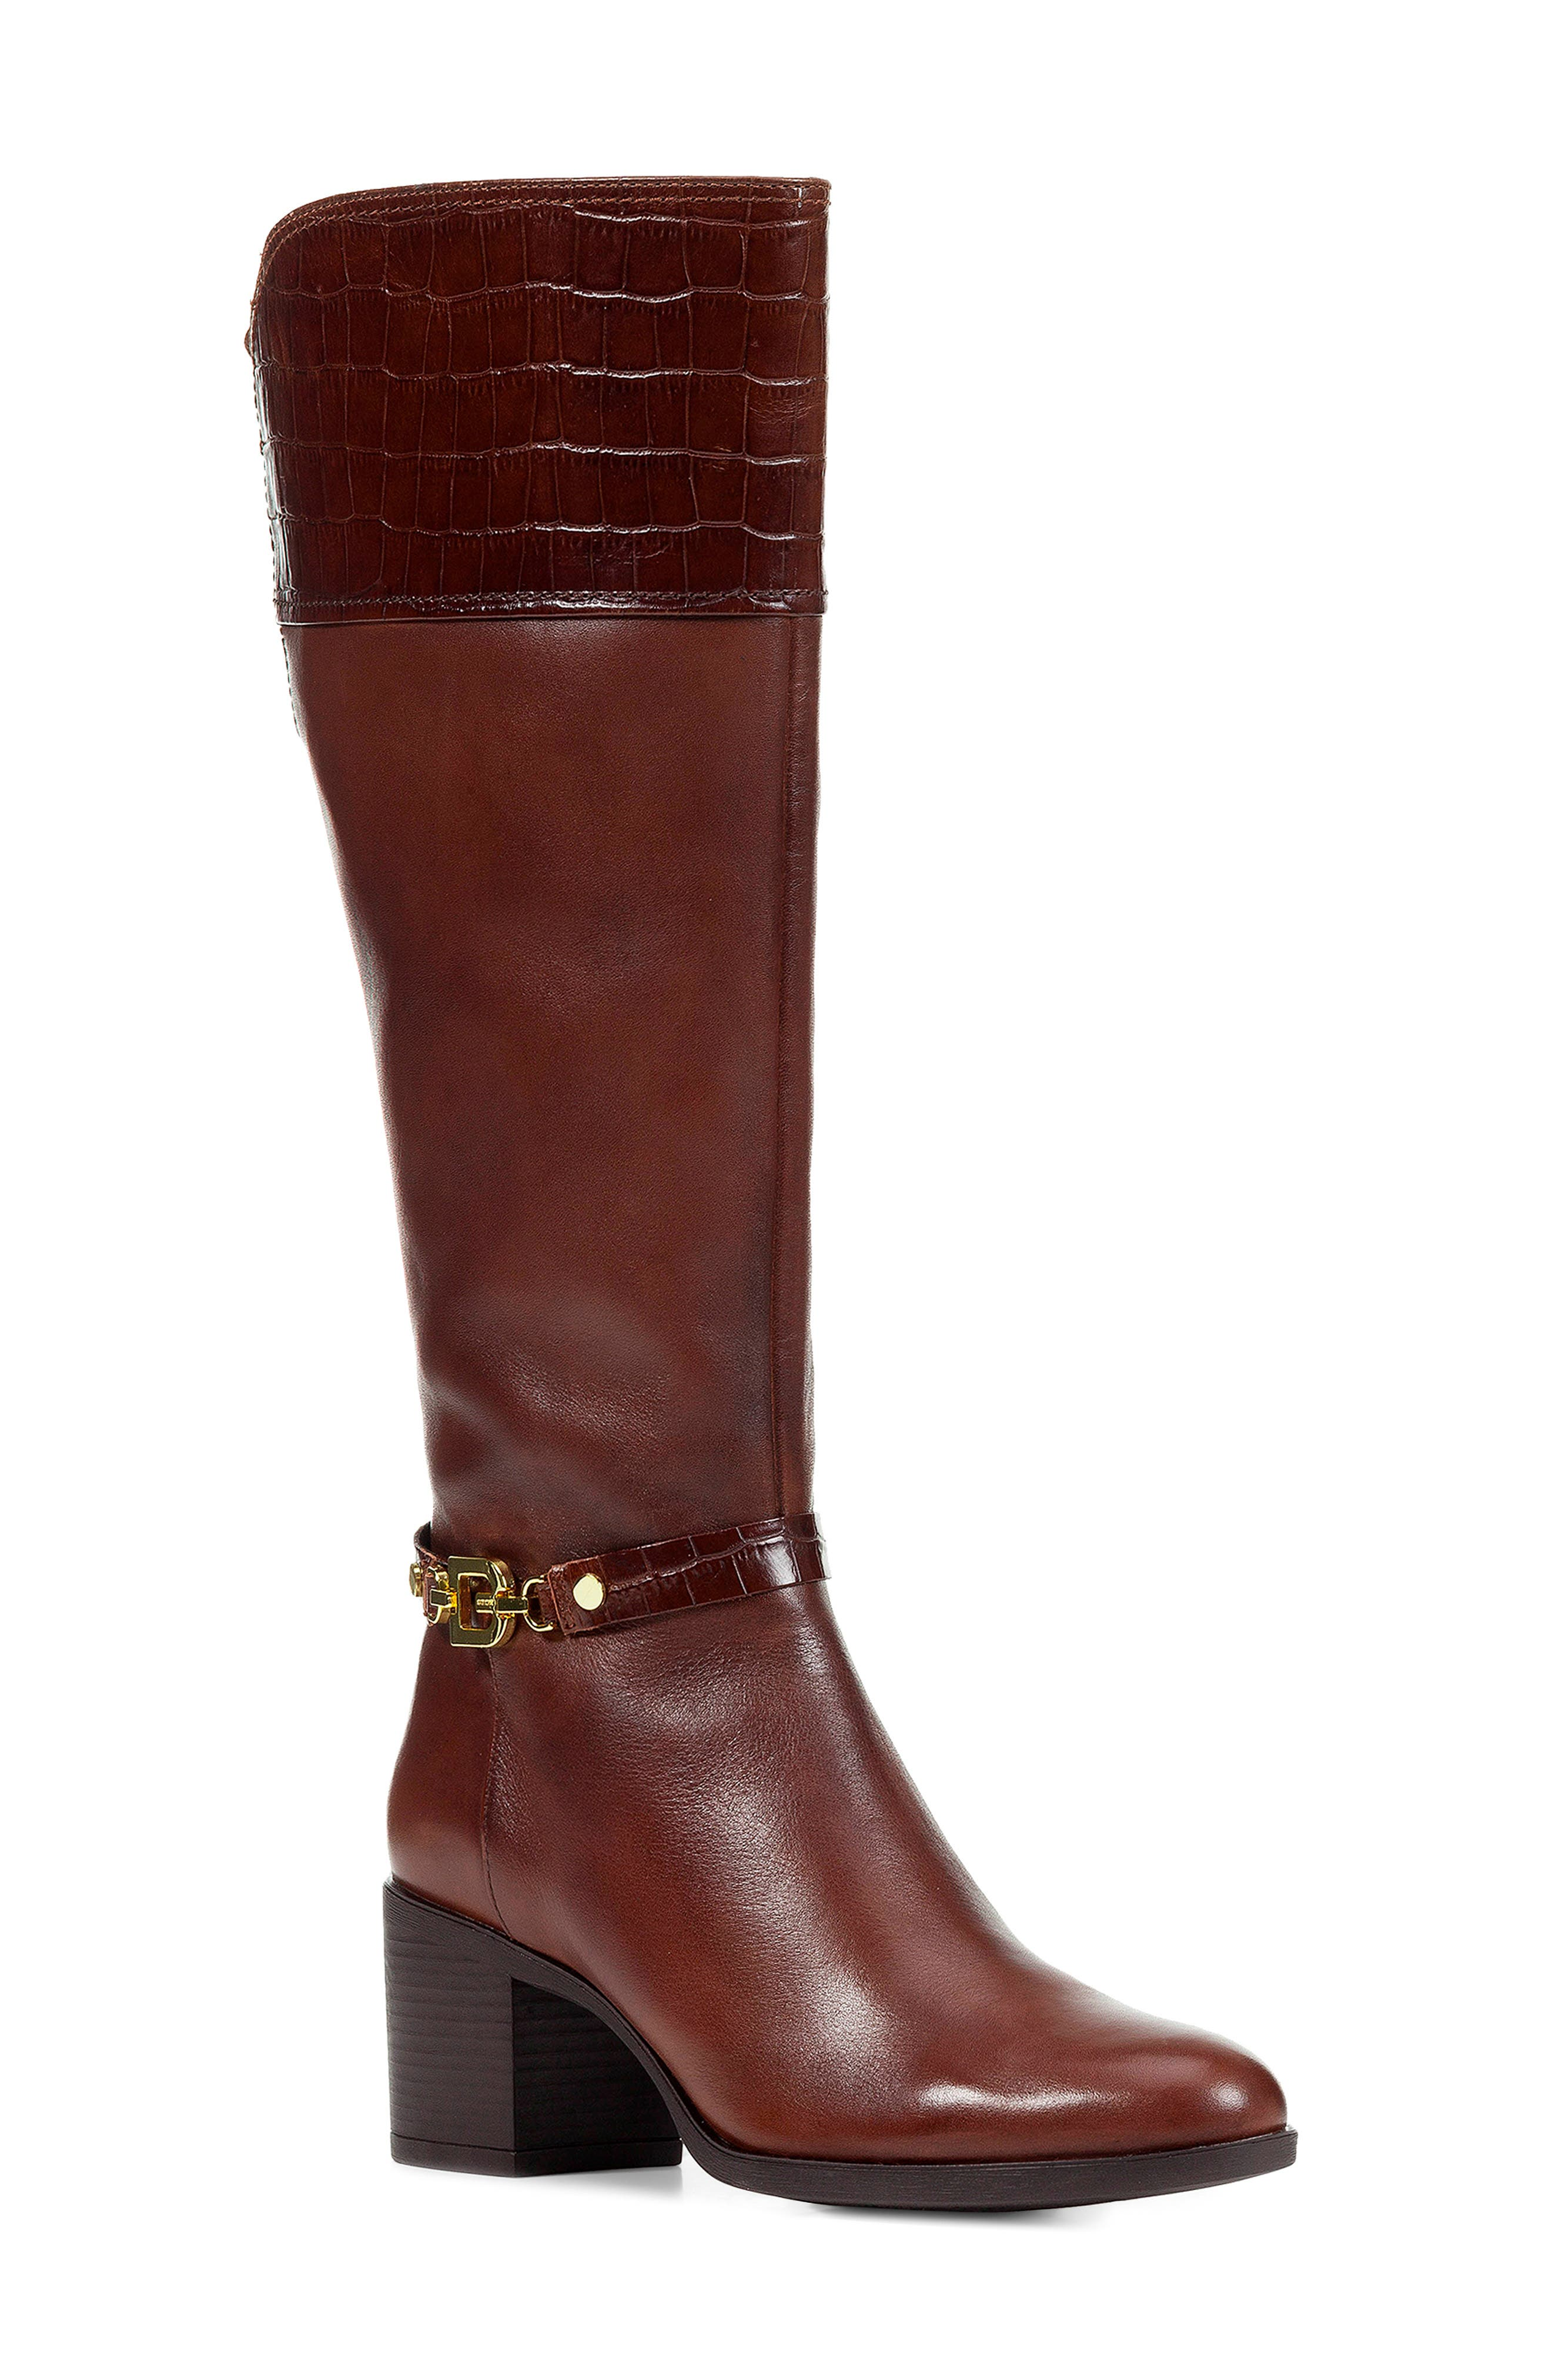 GEOX Glynna Knee High Boot in Brown Leather